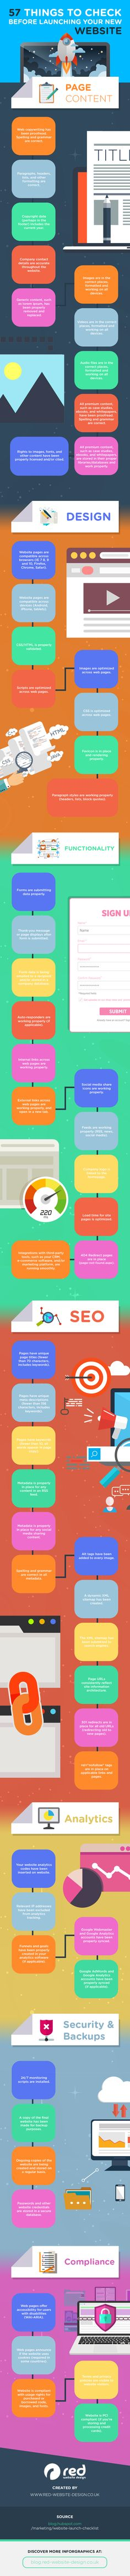 57 Things to Check Before Launching Your New Website [Infographic] - http://topseosoft.com/57-things-to-check-before-launching-your-new-website-infographic/